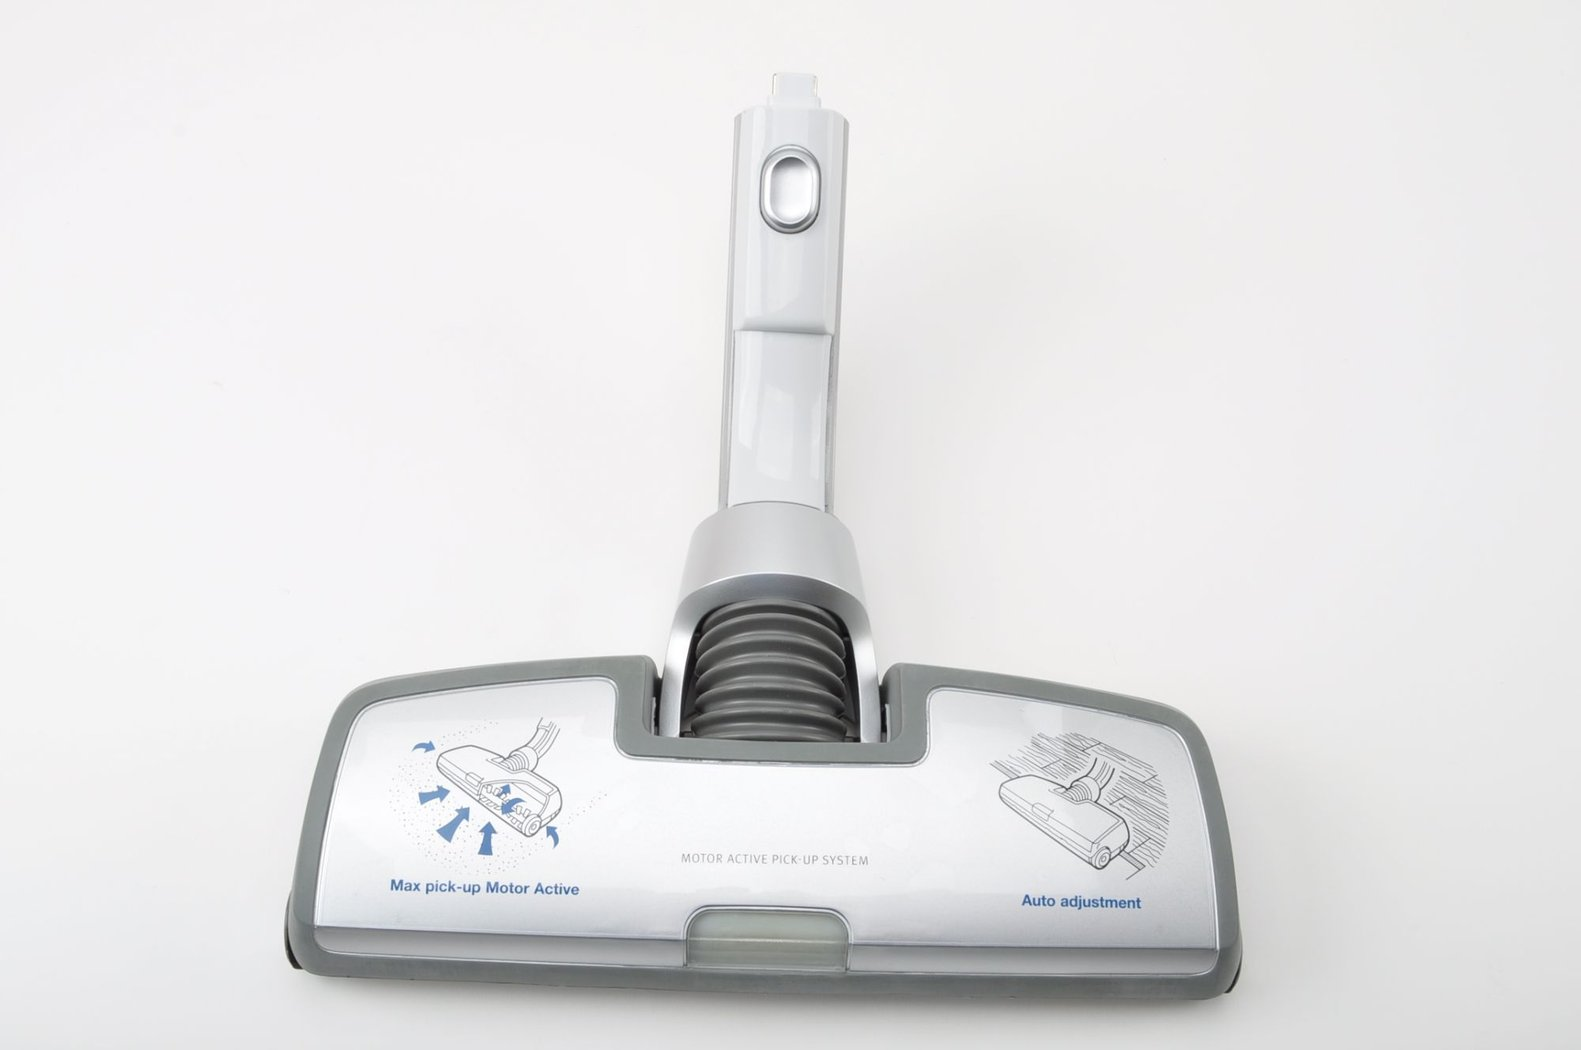 Electrolux sumo active max pickup bodend se saugd se for Electrolux motor active pickup system